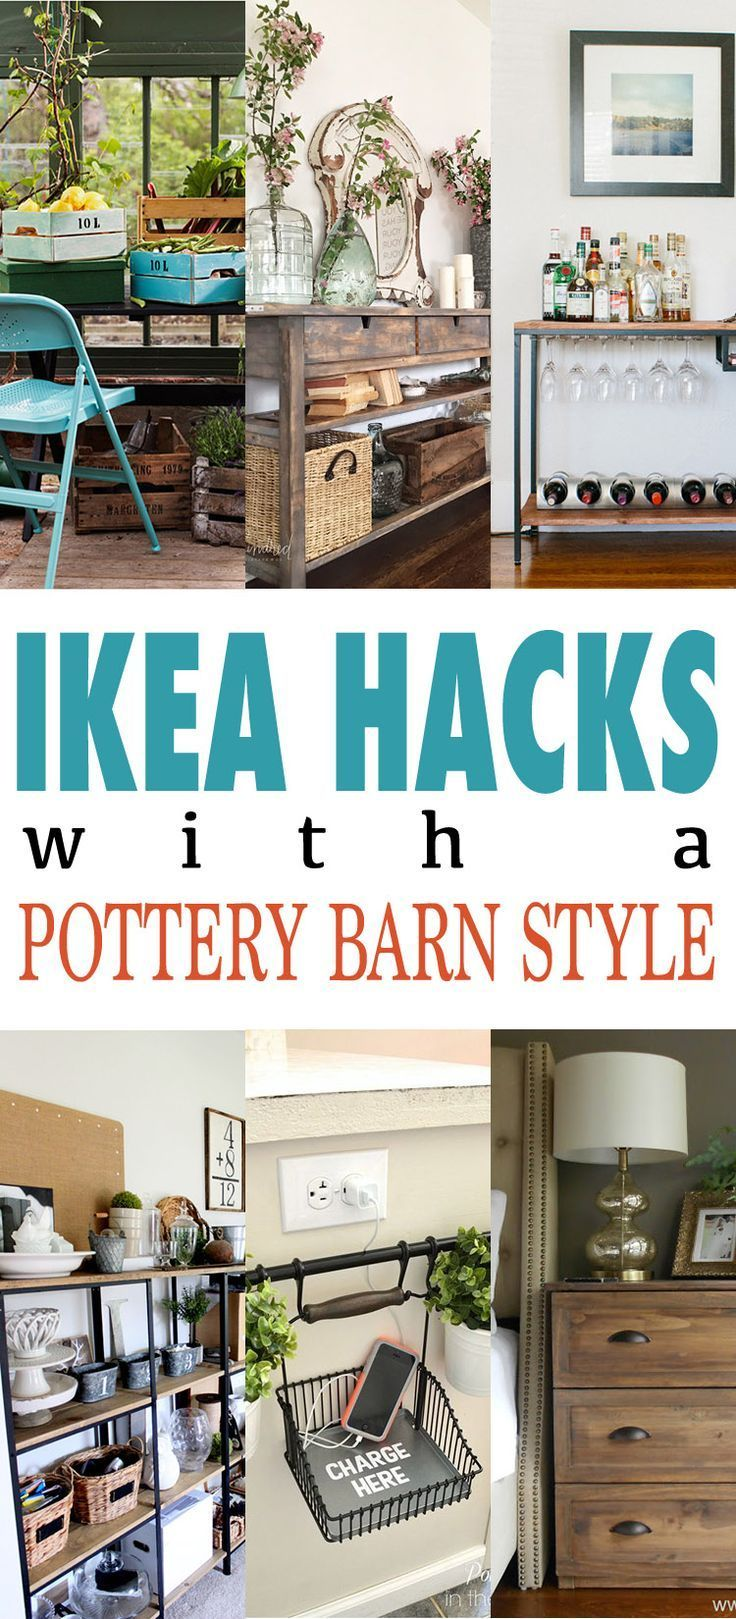 Ikea Hacks with a Pottery Barn Style